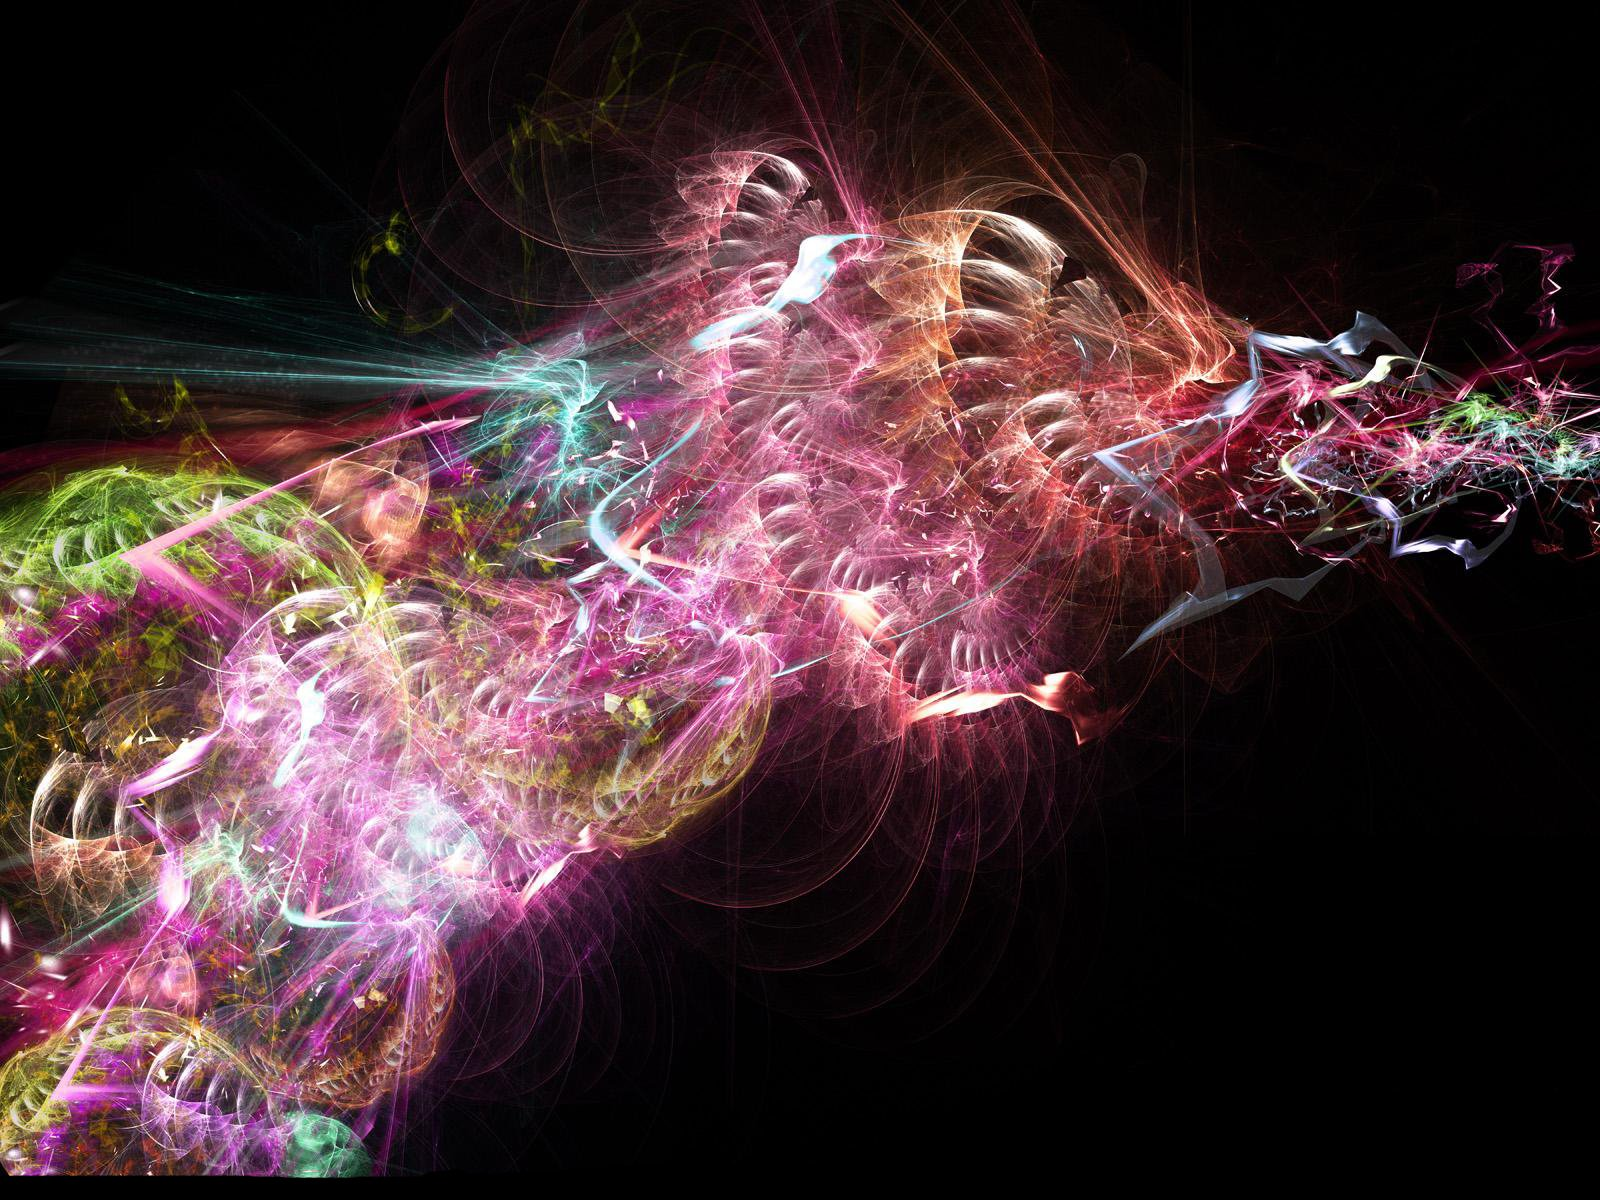 Abstract - Fractal  Colors Abstract Artistic Colorful Digital Wallpaper